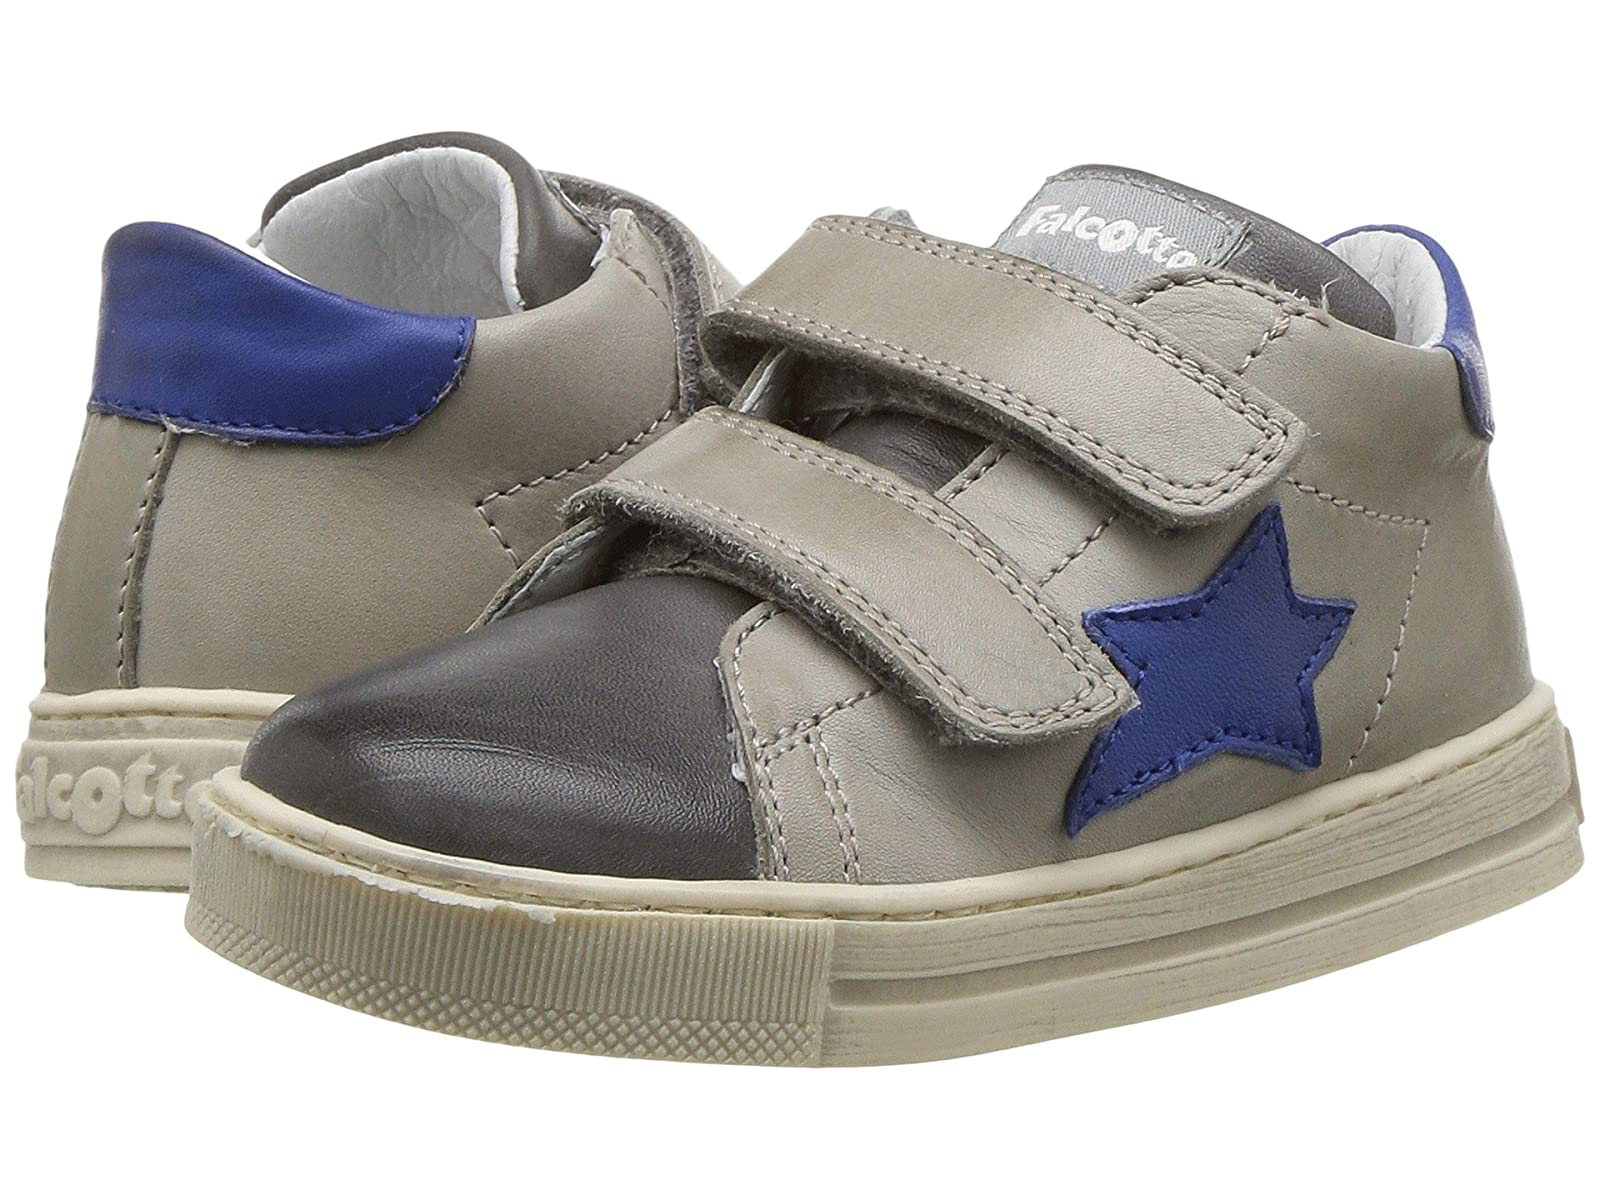 Naturino Falcotto Sirio VL SS18 (Toddler)Cheap and distinctive eye-catching shoes